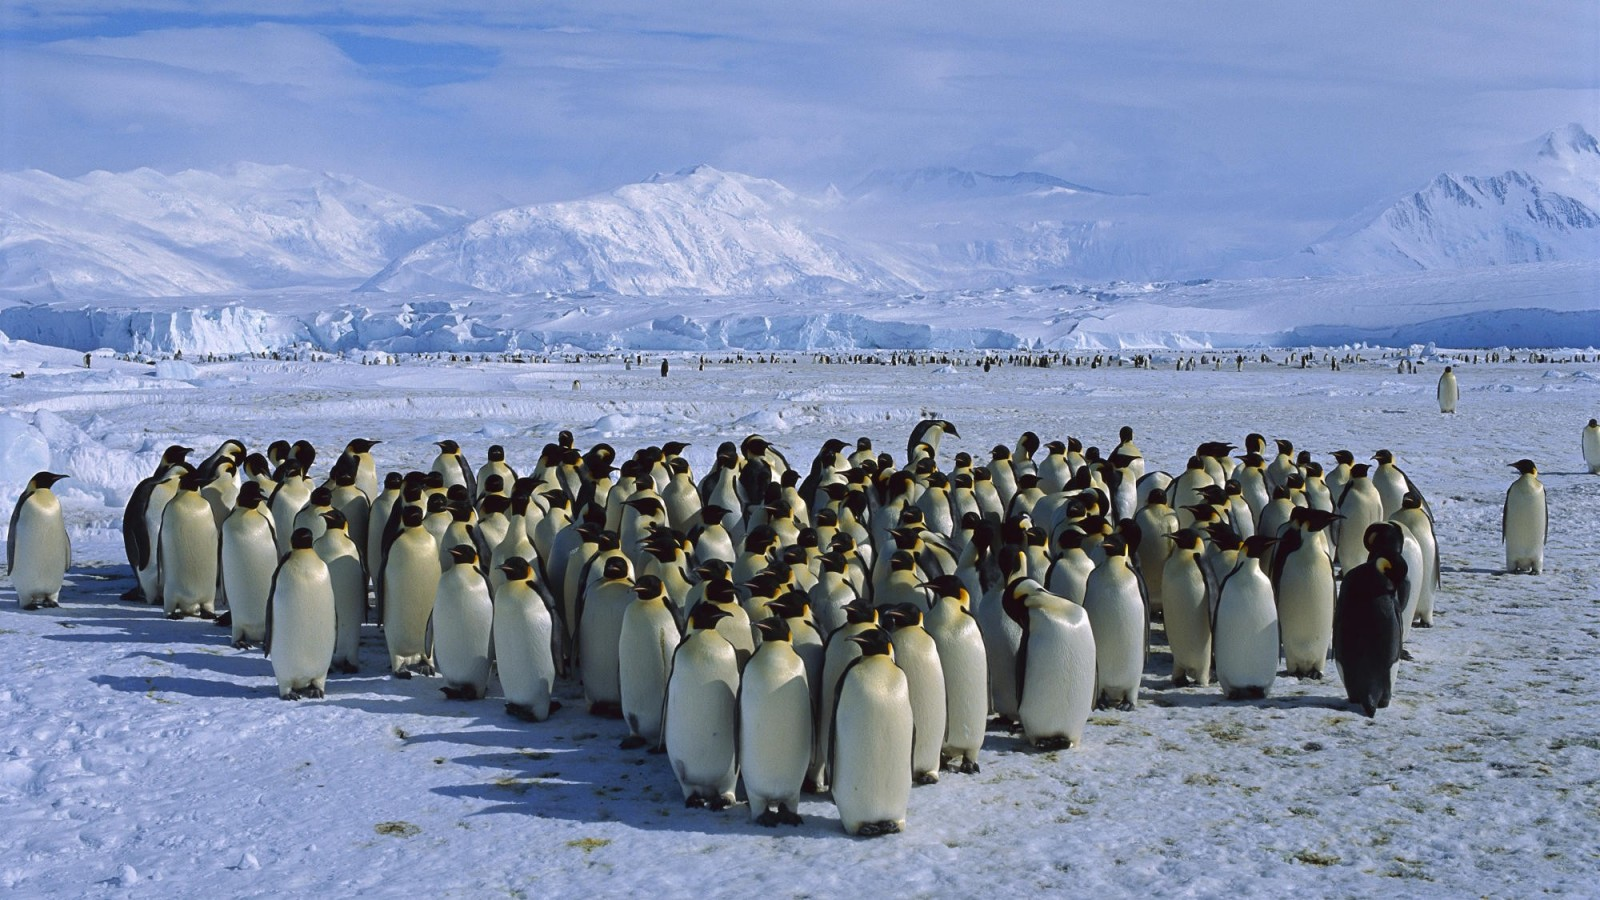 Antarctica wallpapers - Emperor Penguin Colony